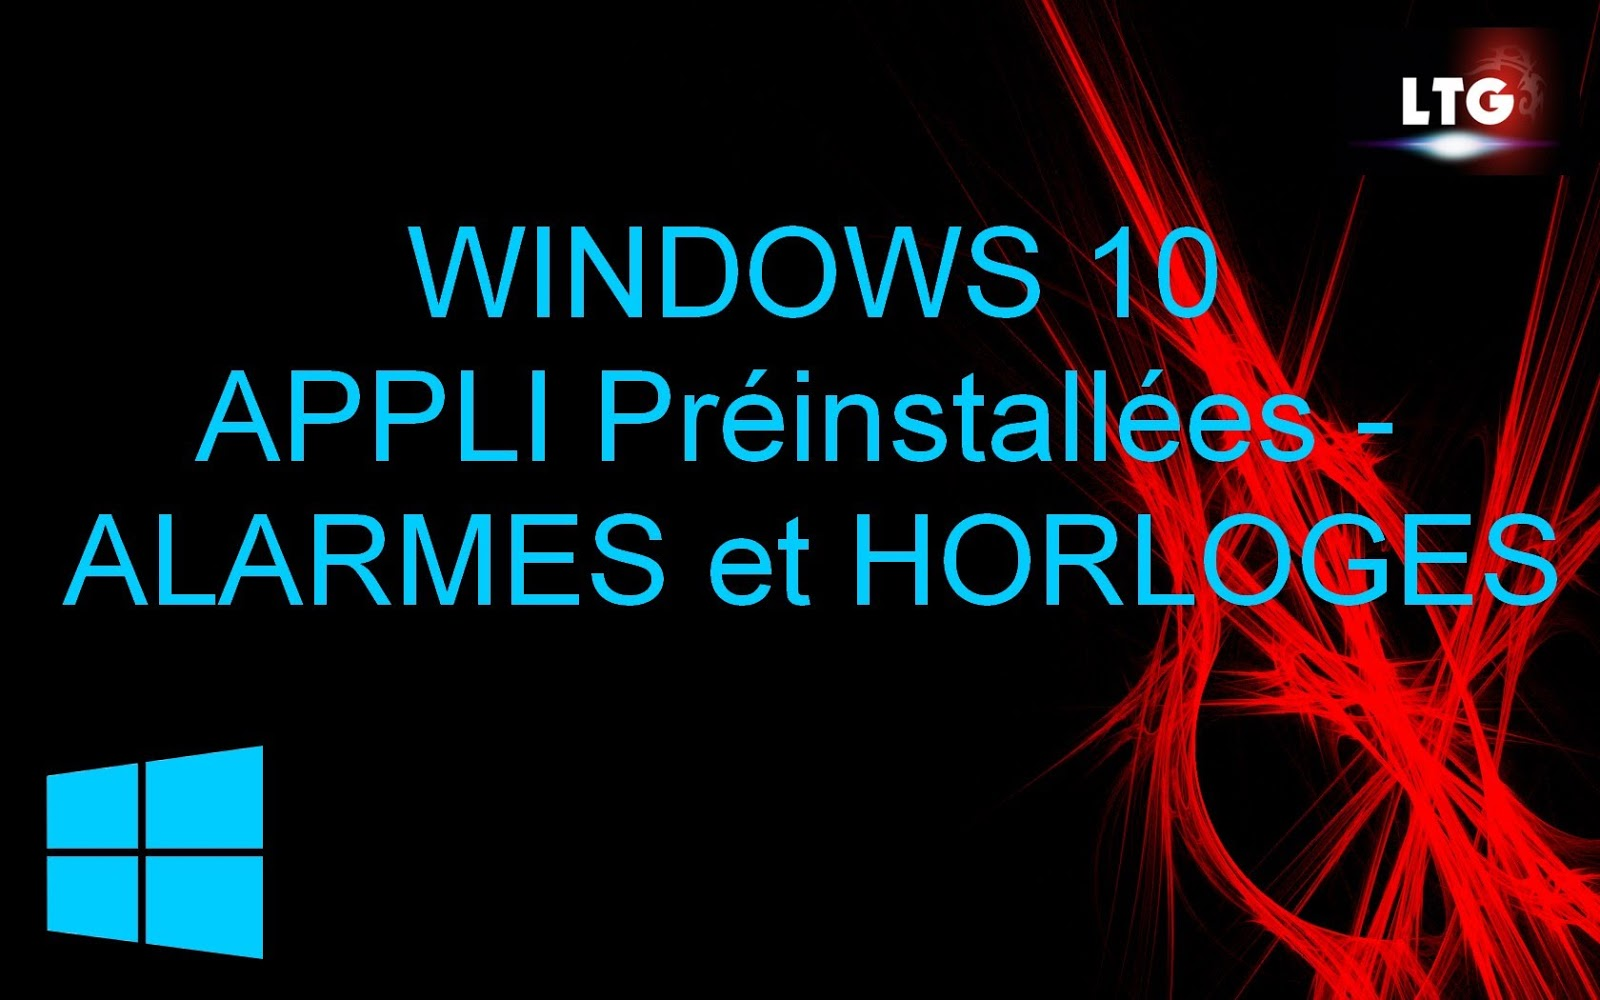 Alarme sonore windows 10